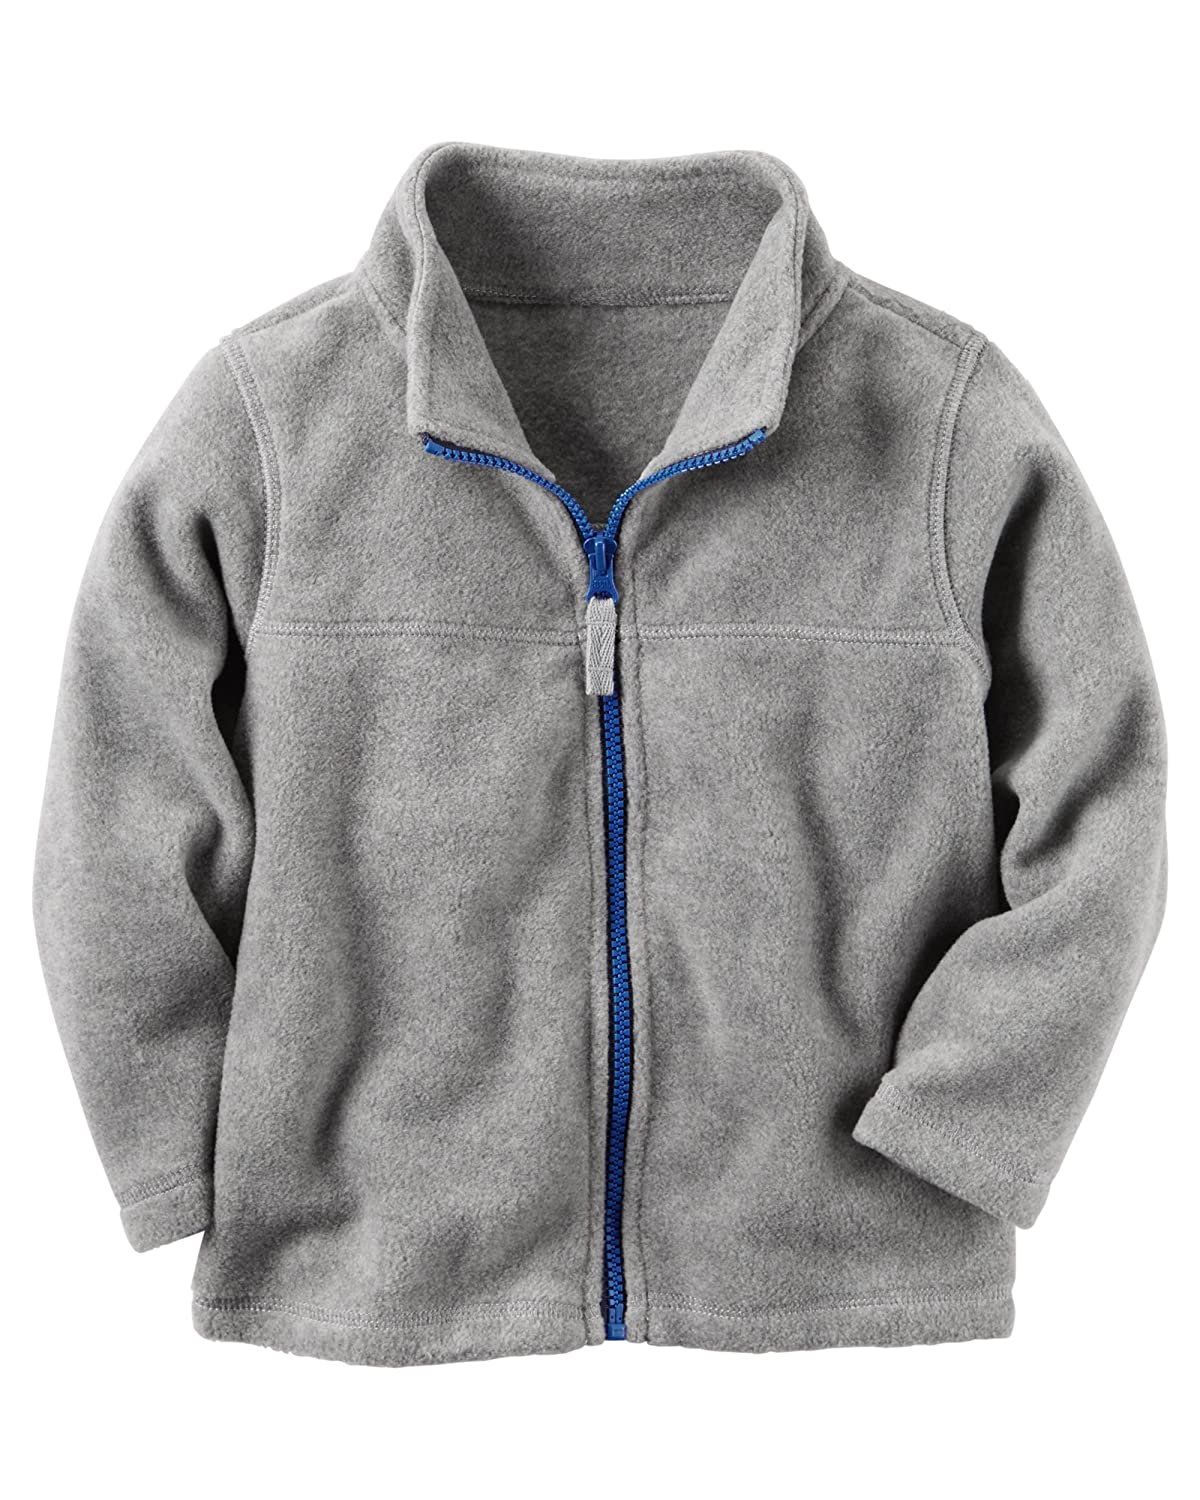 Carter's Little Boys' Zip-Up Heavyweight Fleece Jacket